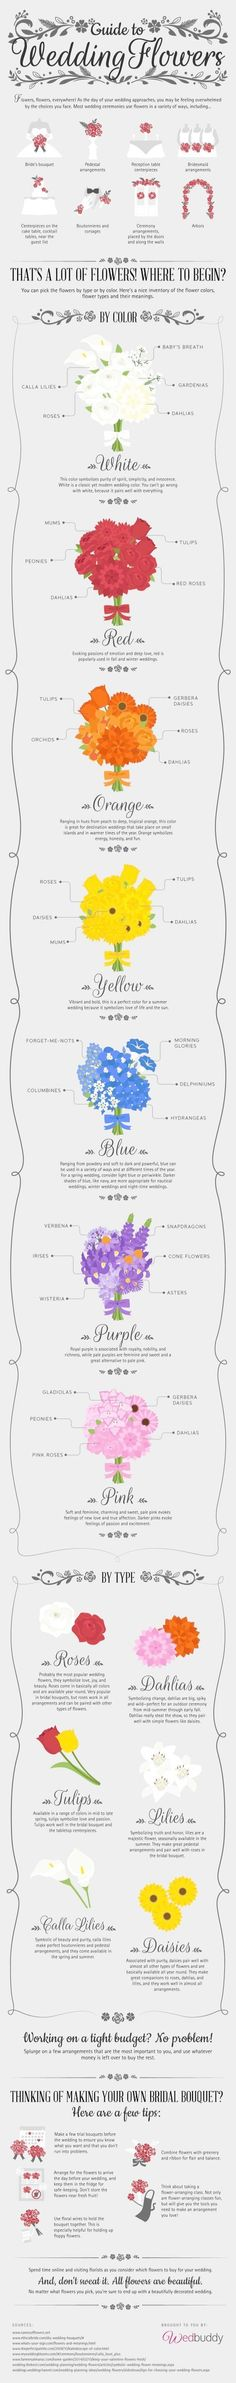 A Guide To Flowers - Wedbuddy Blog - #Wedding #Reception #Party Re-pinned from Forever Friends Fine Stationery Favors